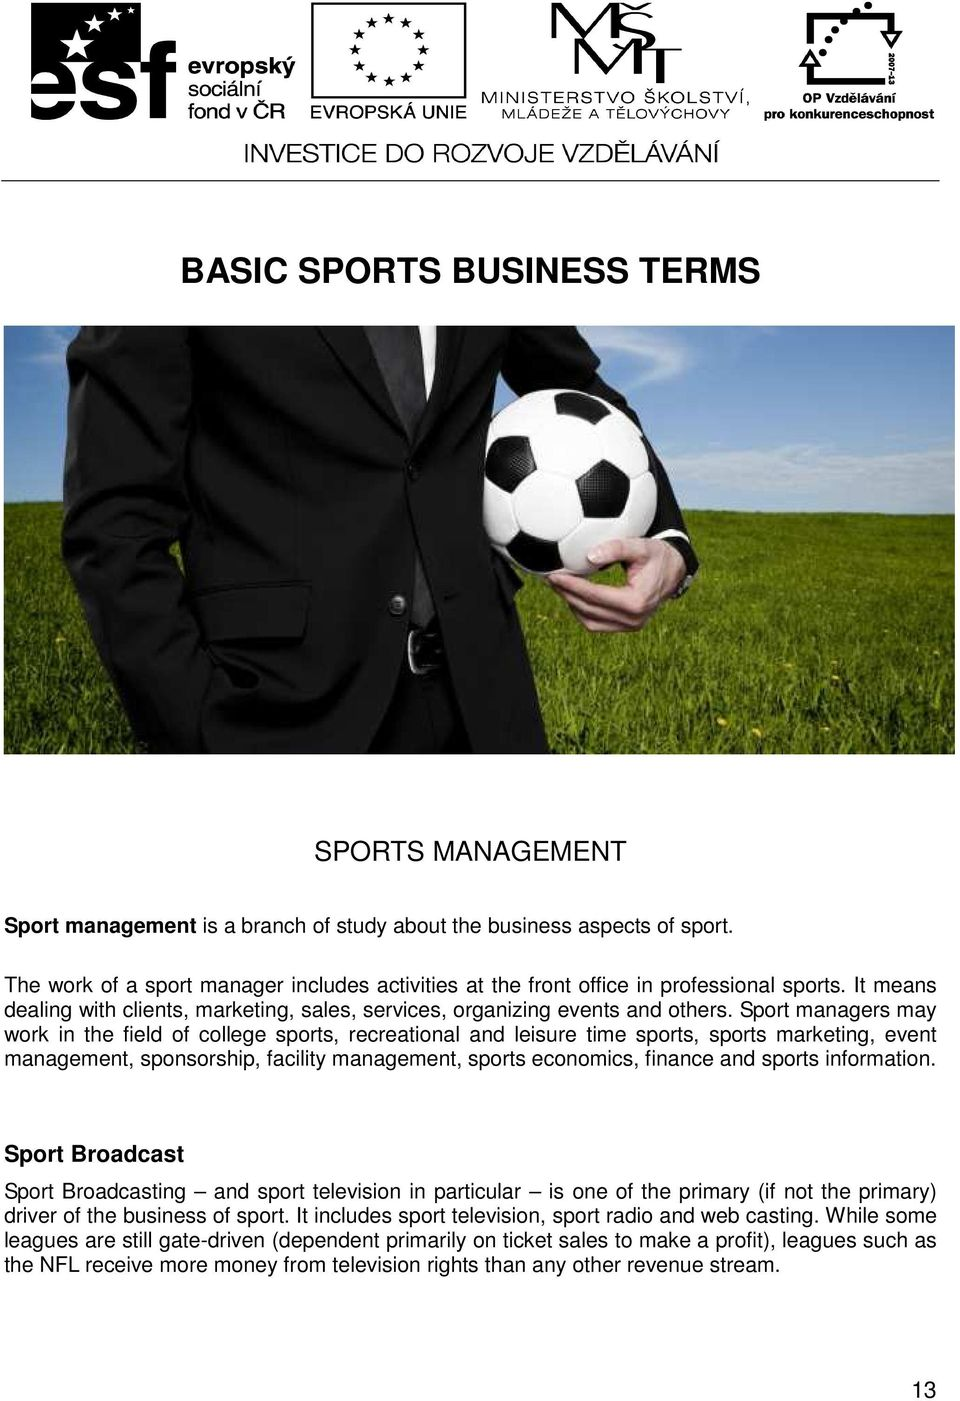 Sport managers may work in the field of college sports, recreational and leisure time sports, sports marketing, event management, sponsorship, facility management, sports economics, finance and